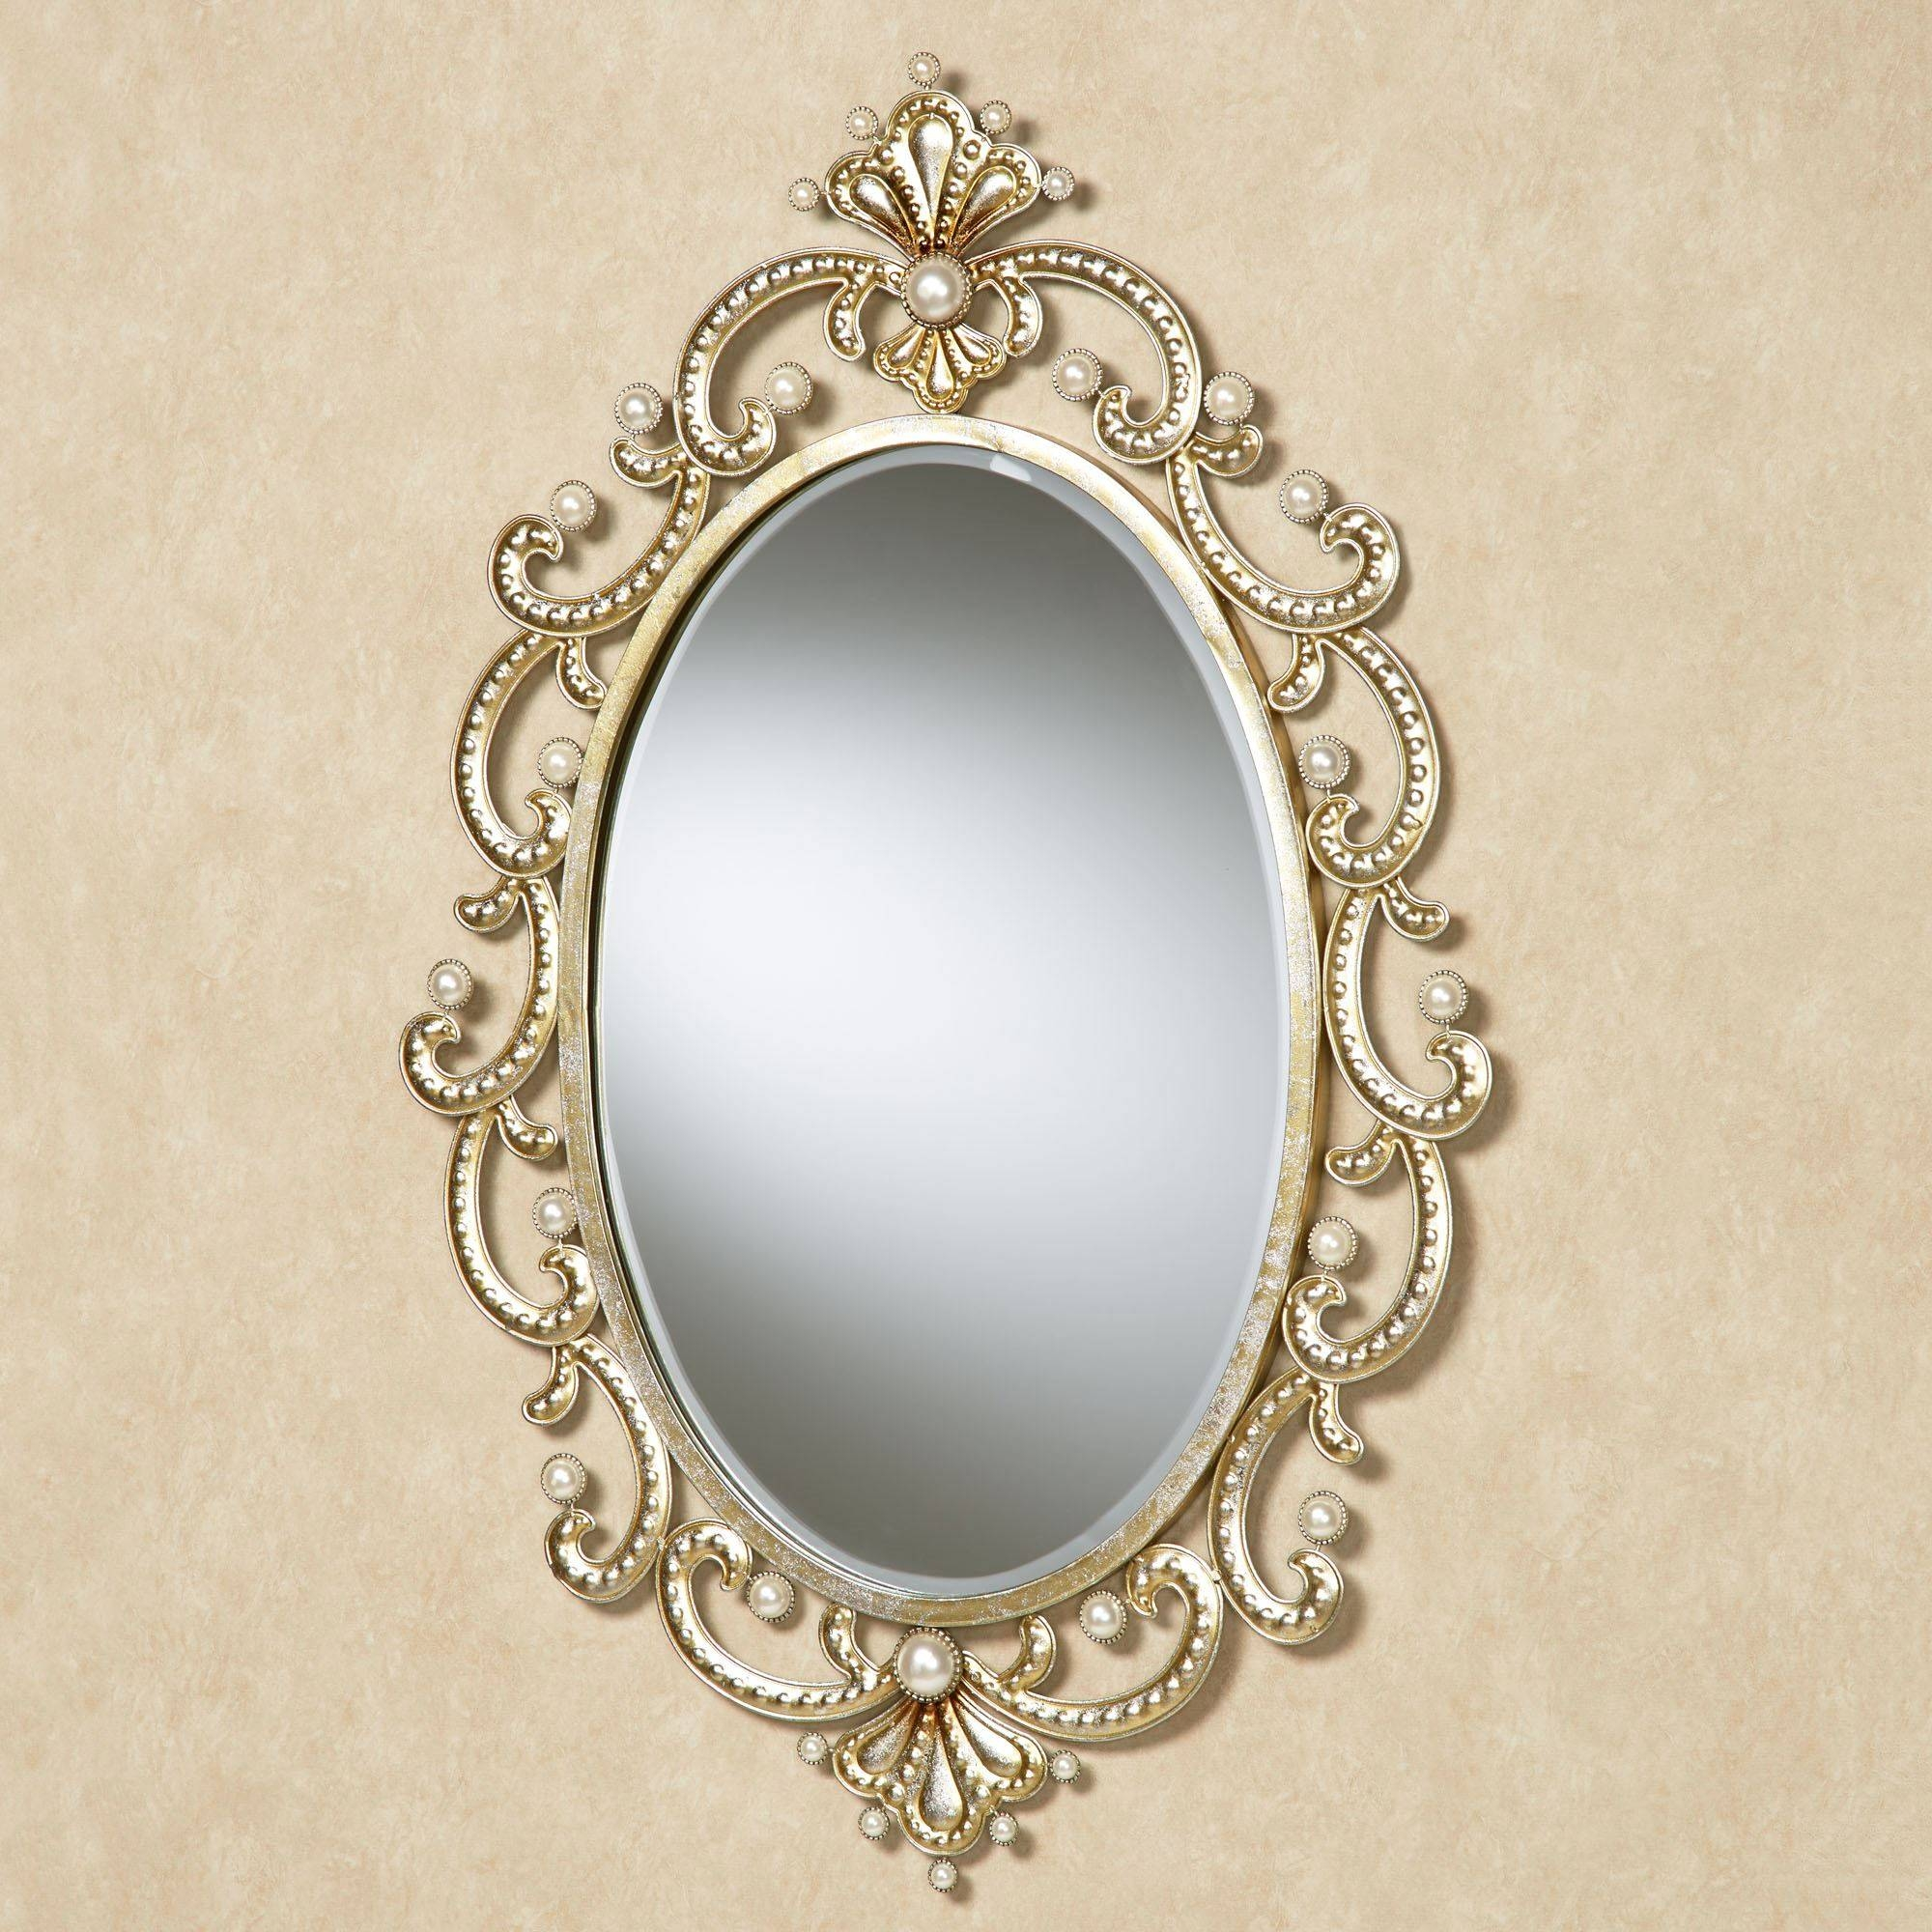 Giorgianna Pearl Oval Wall Mirror for Champagne Wall Mirrors (Image 5 of 25)